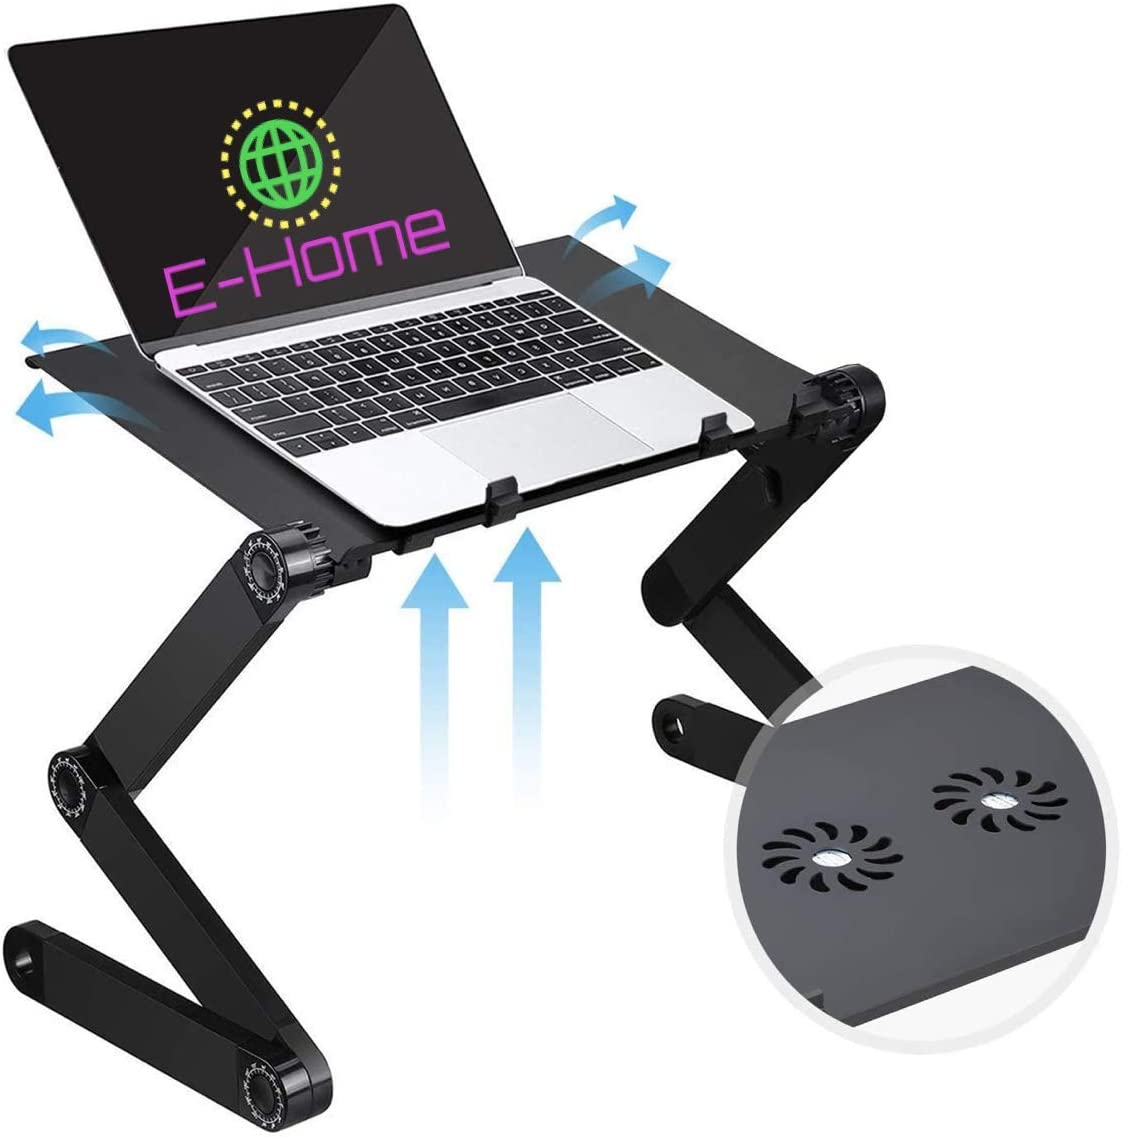 E-Home Adjustable Height Laptop Stand with 2 CPU Cooling Fans and Mouse Pad | Foldable Book Stand | Standing Desk | Portable Workstation | Ergonomic Bed Tray | Couch Sofa | Ventilation | Office Desk